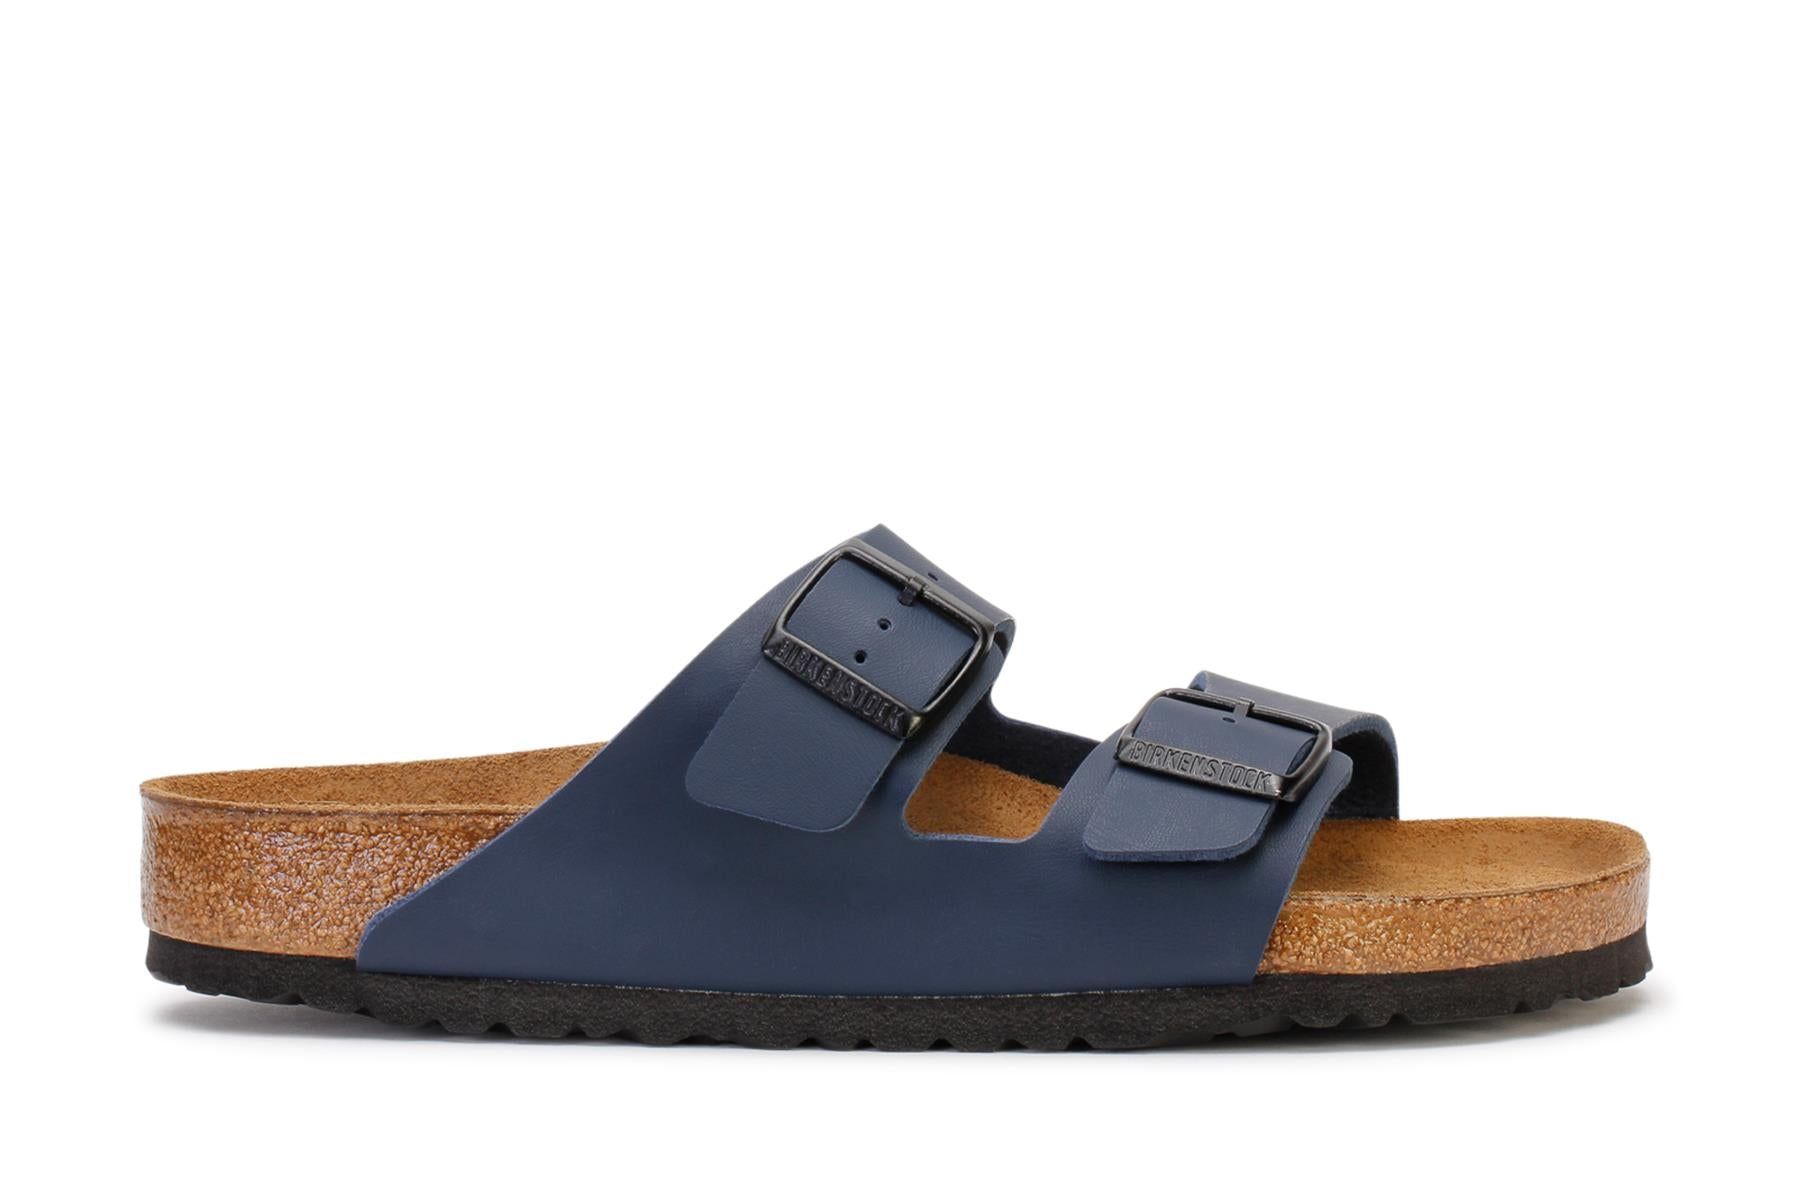 Birkenstock Men's Slide Sandals Arizona BS Blue Birko-Flor 51061